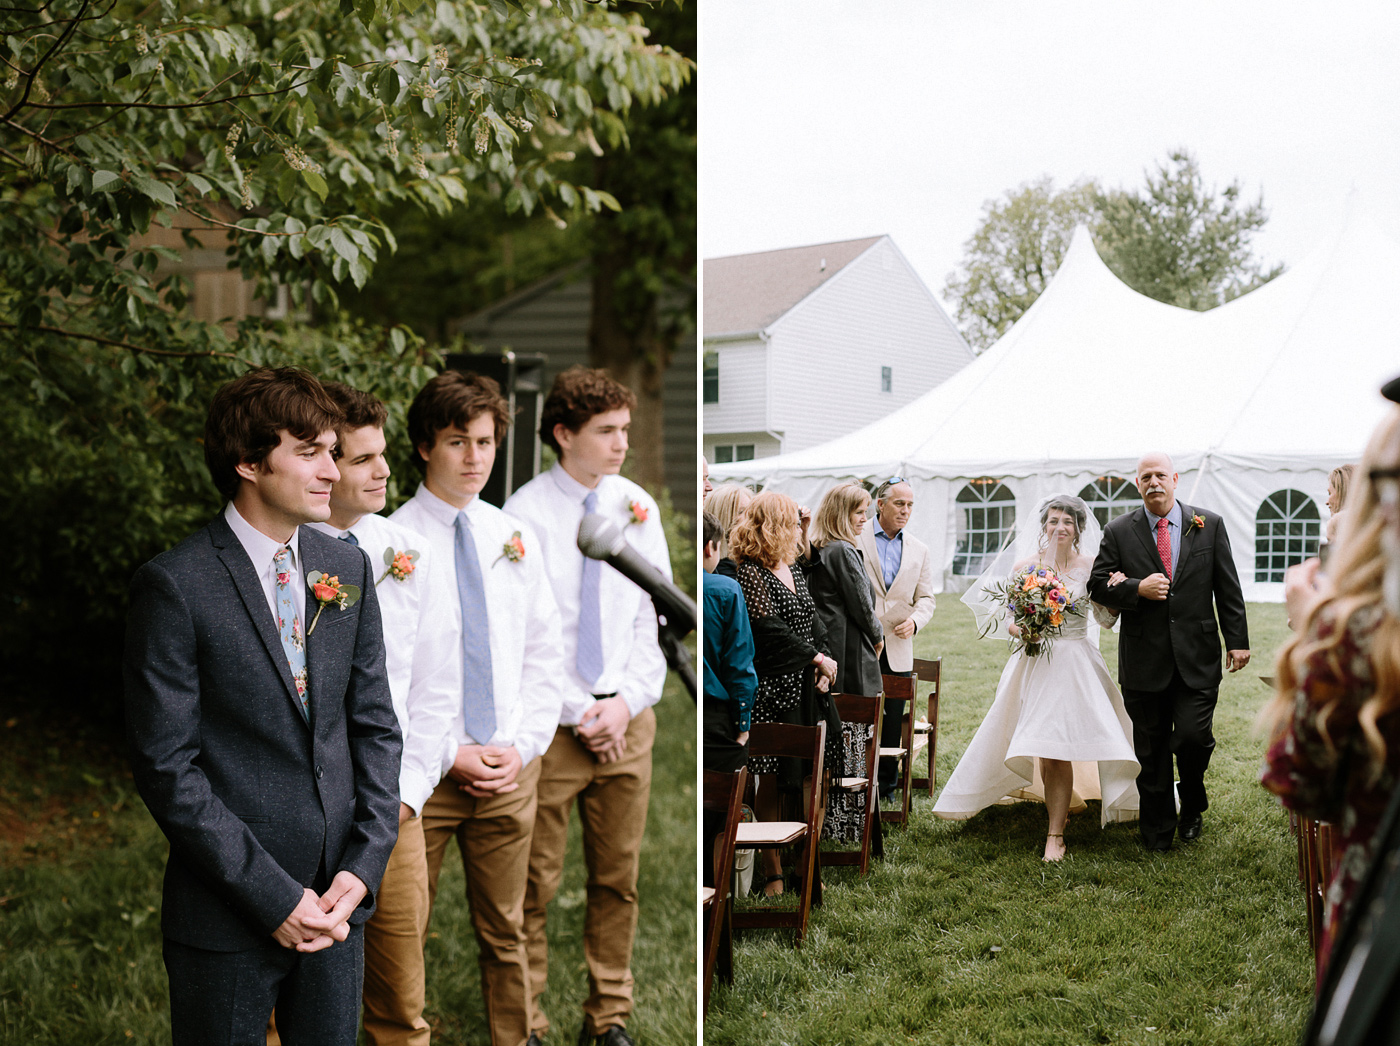 Groom watching bride and father walking down aisle